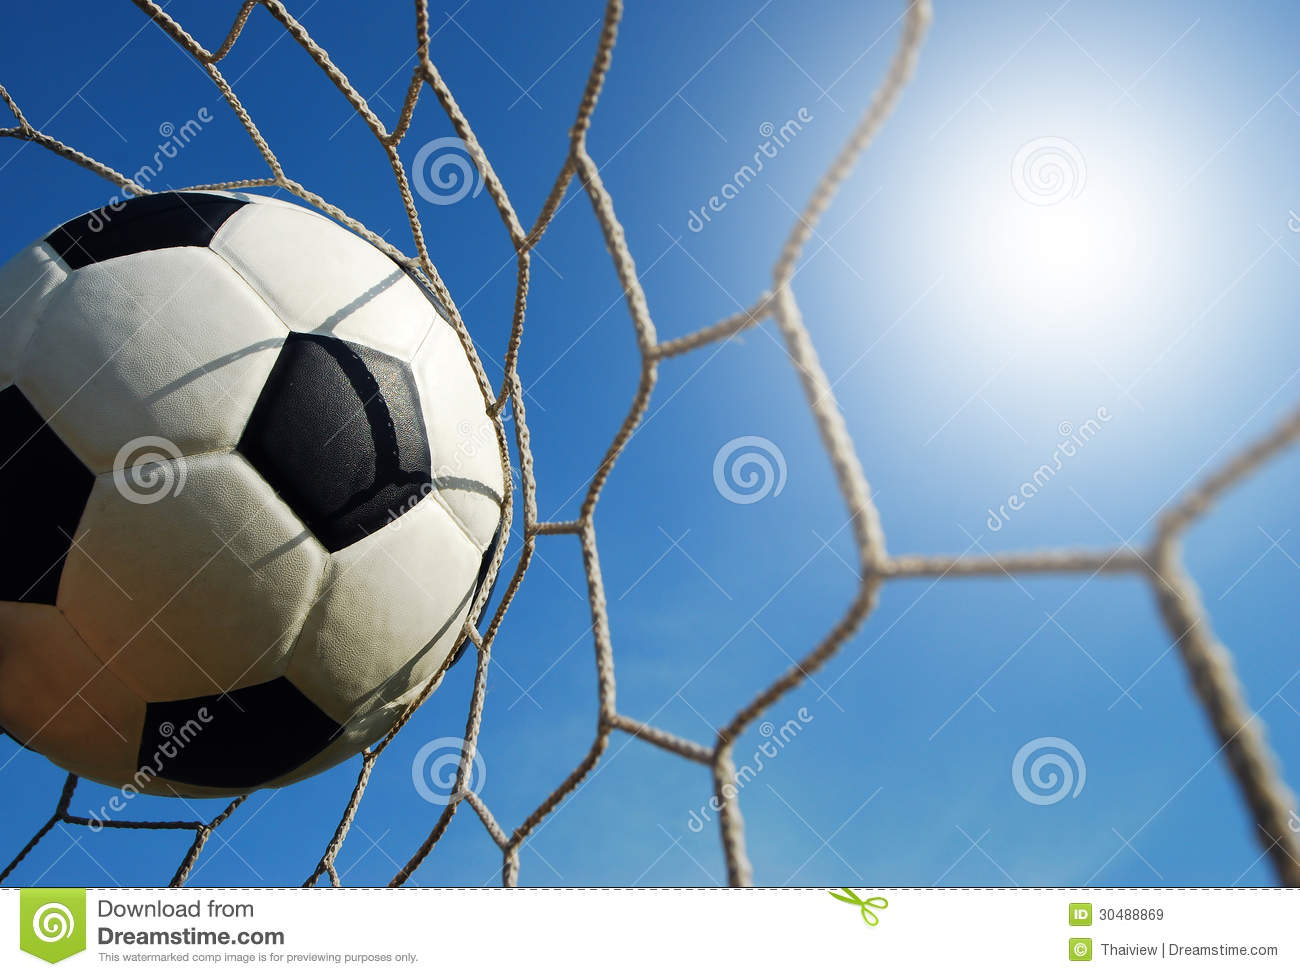 Soccer Football On Green Field With Blue Sky Background: Football Field Soccer Royalty Free Stock Images